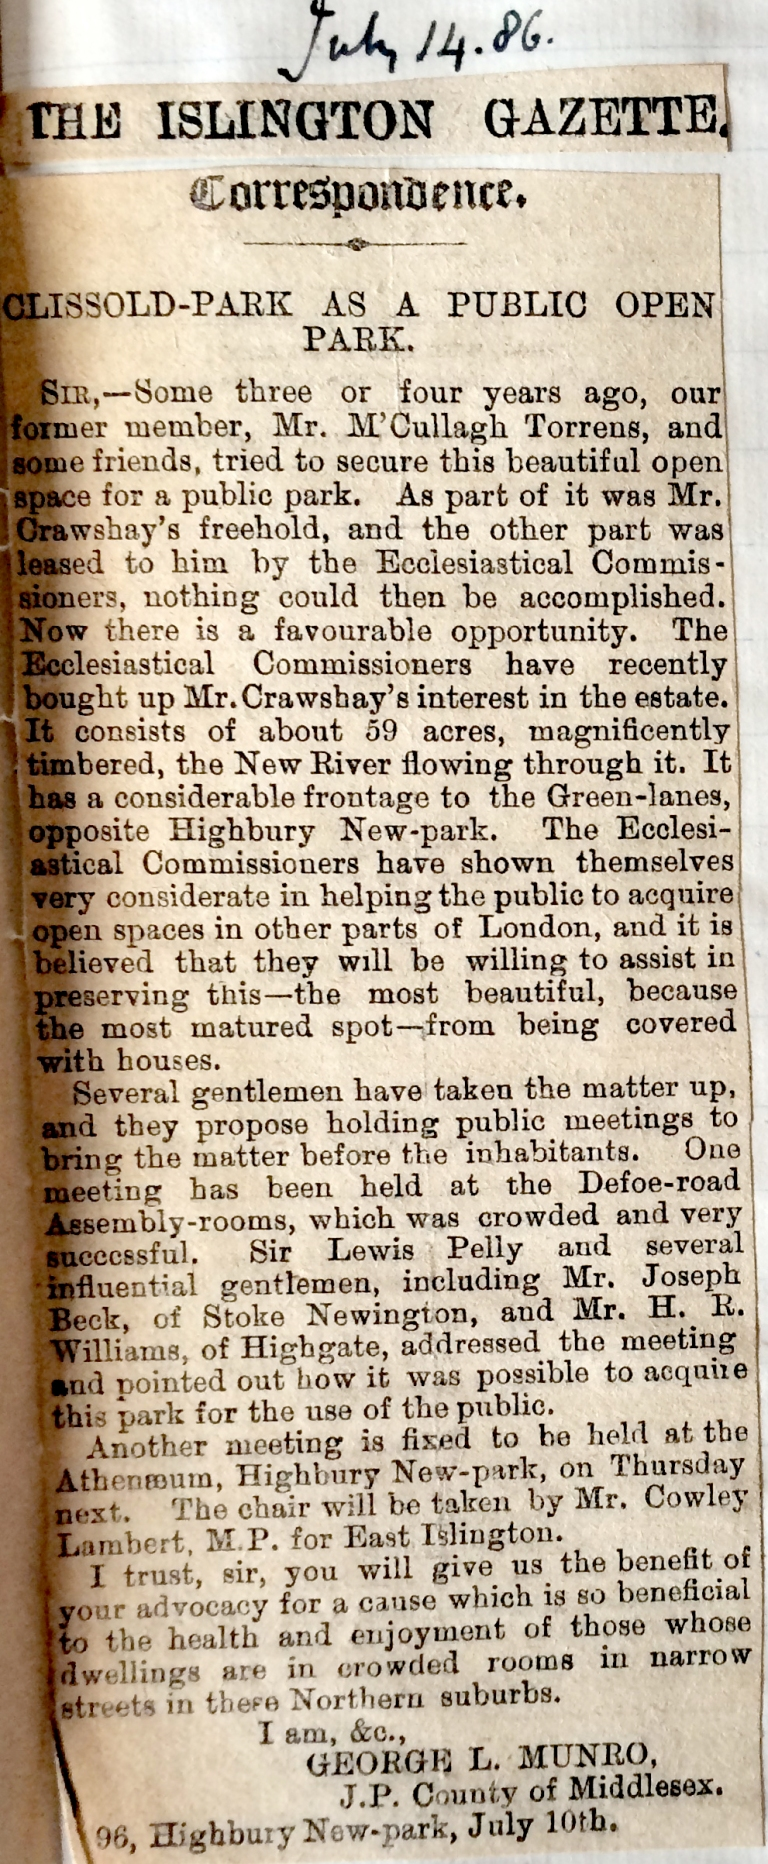 14_07_1886 NEWS CLIPPING The Islington Gazette [CHECKED]